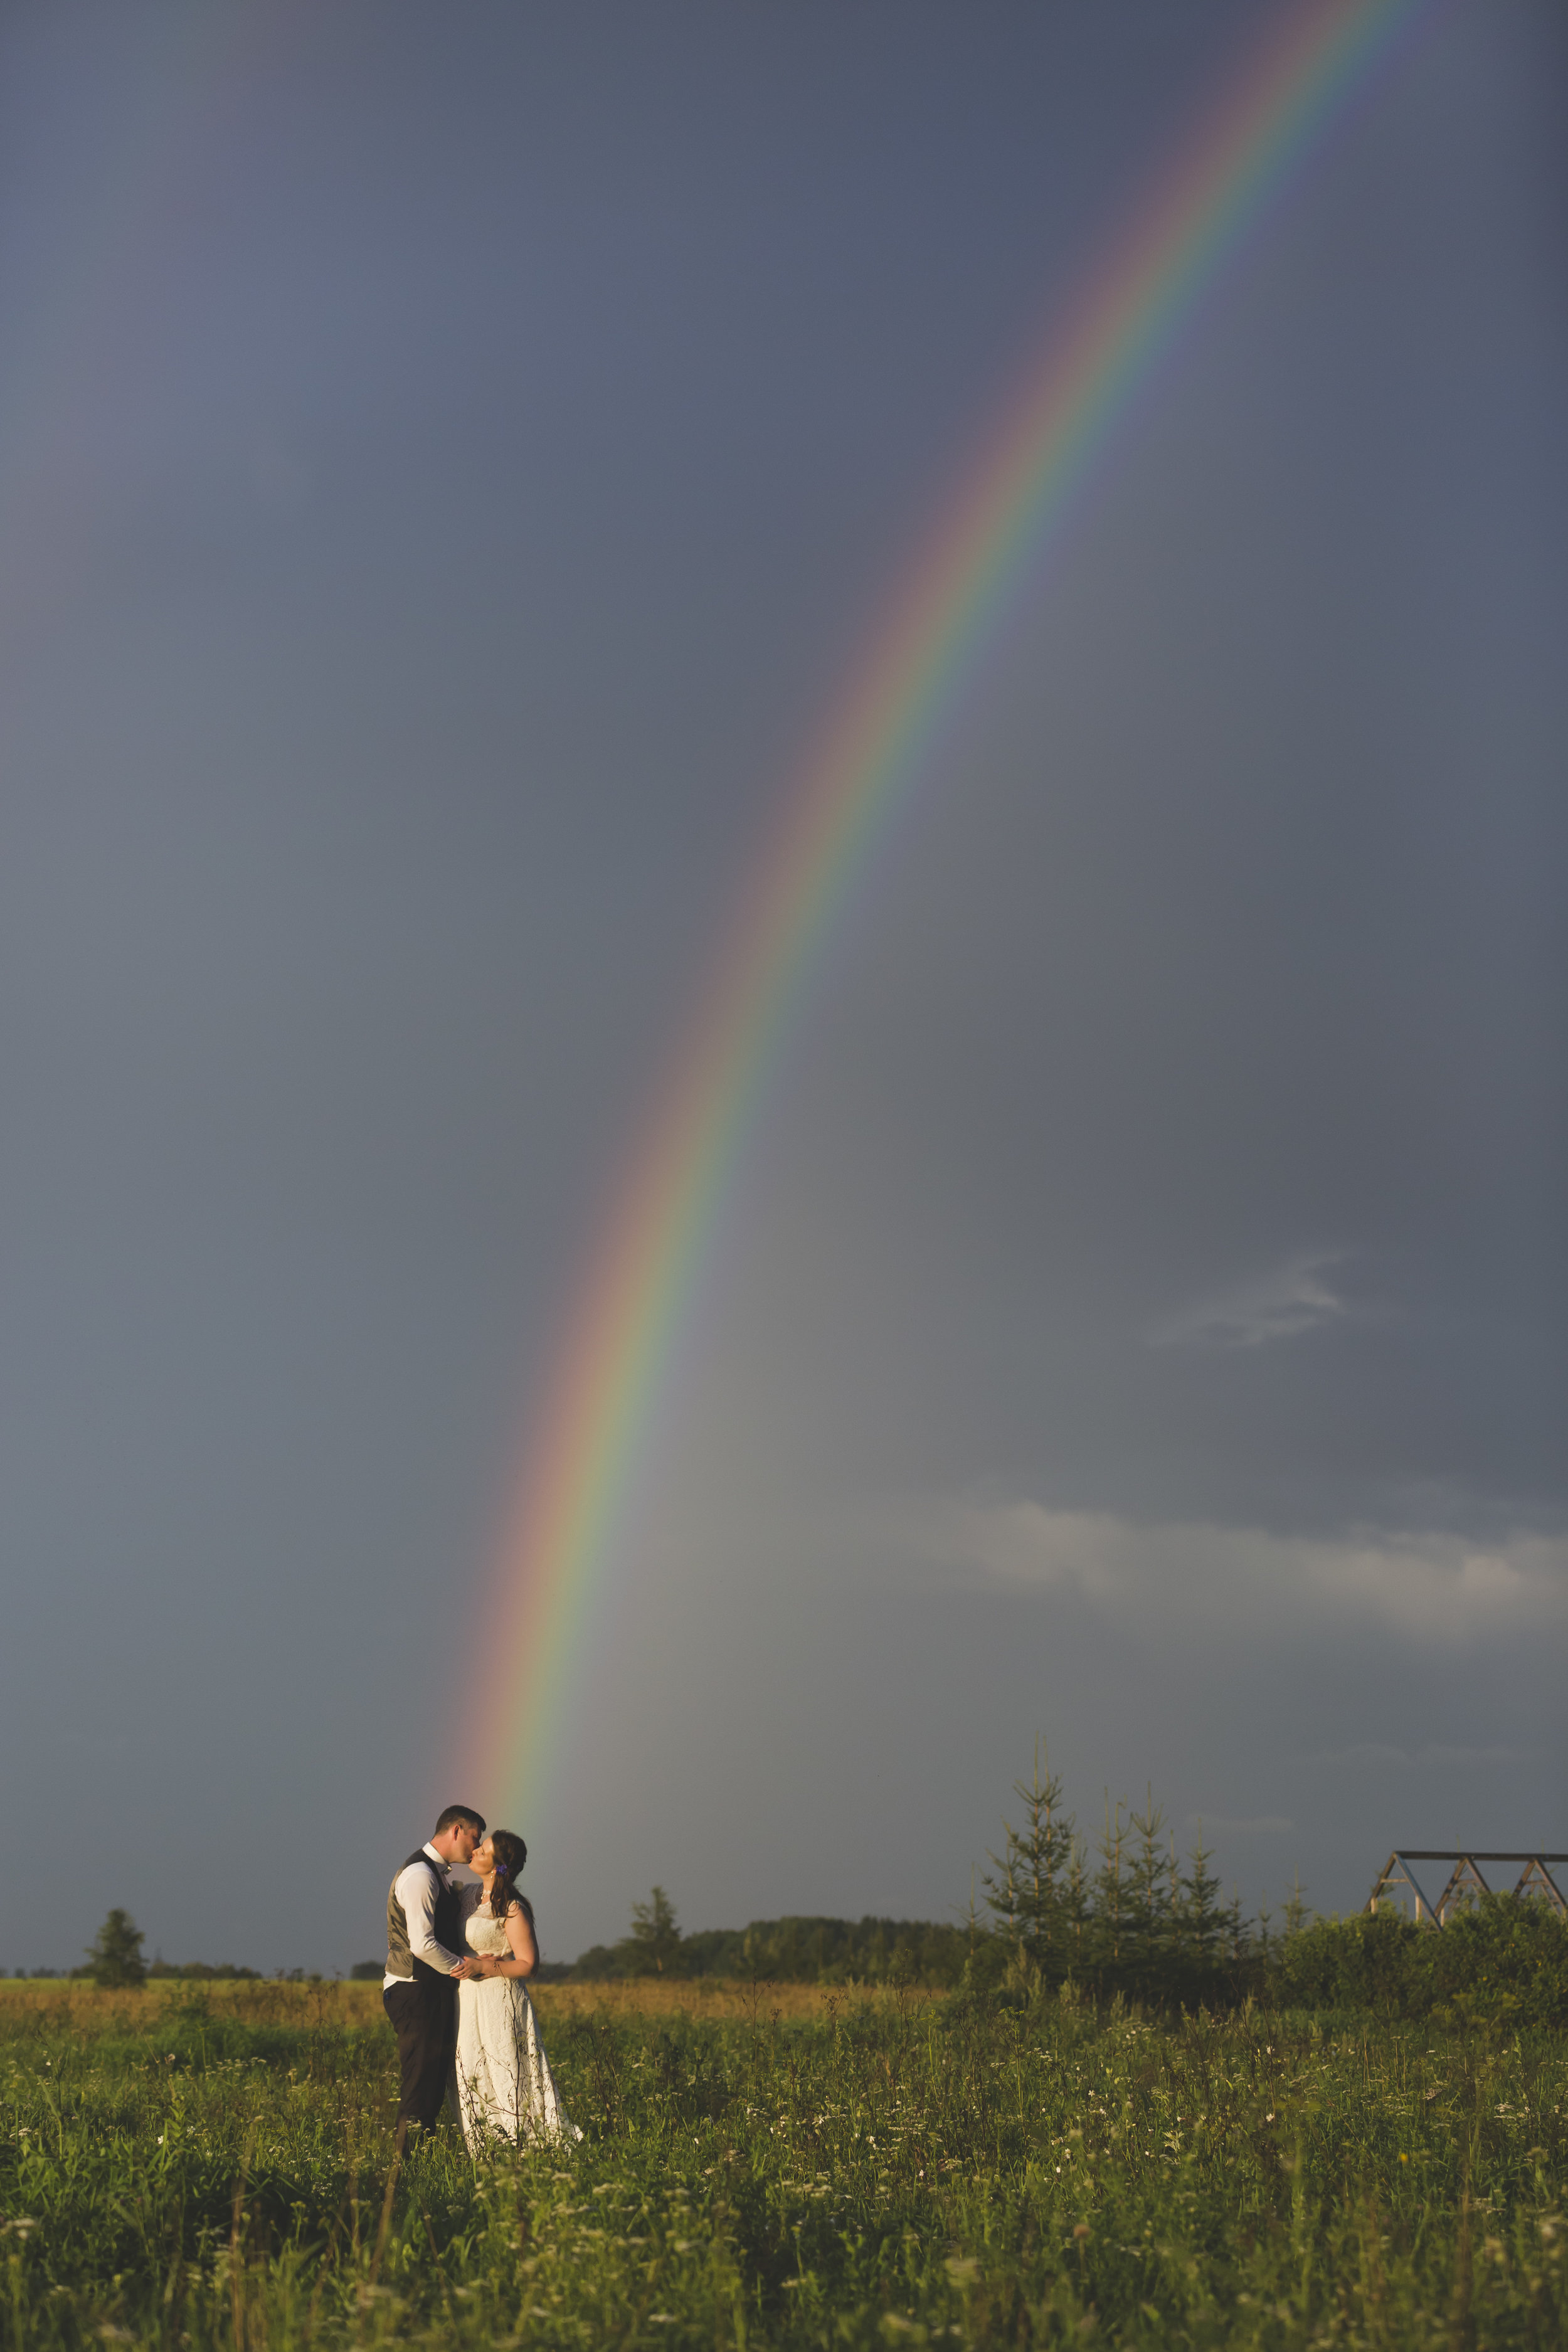 Rainbow Wedding photo by wedding photographer Valdur Rosenvald